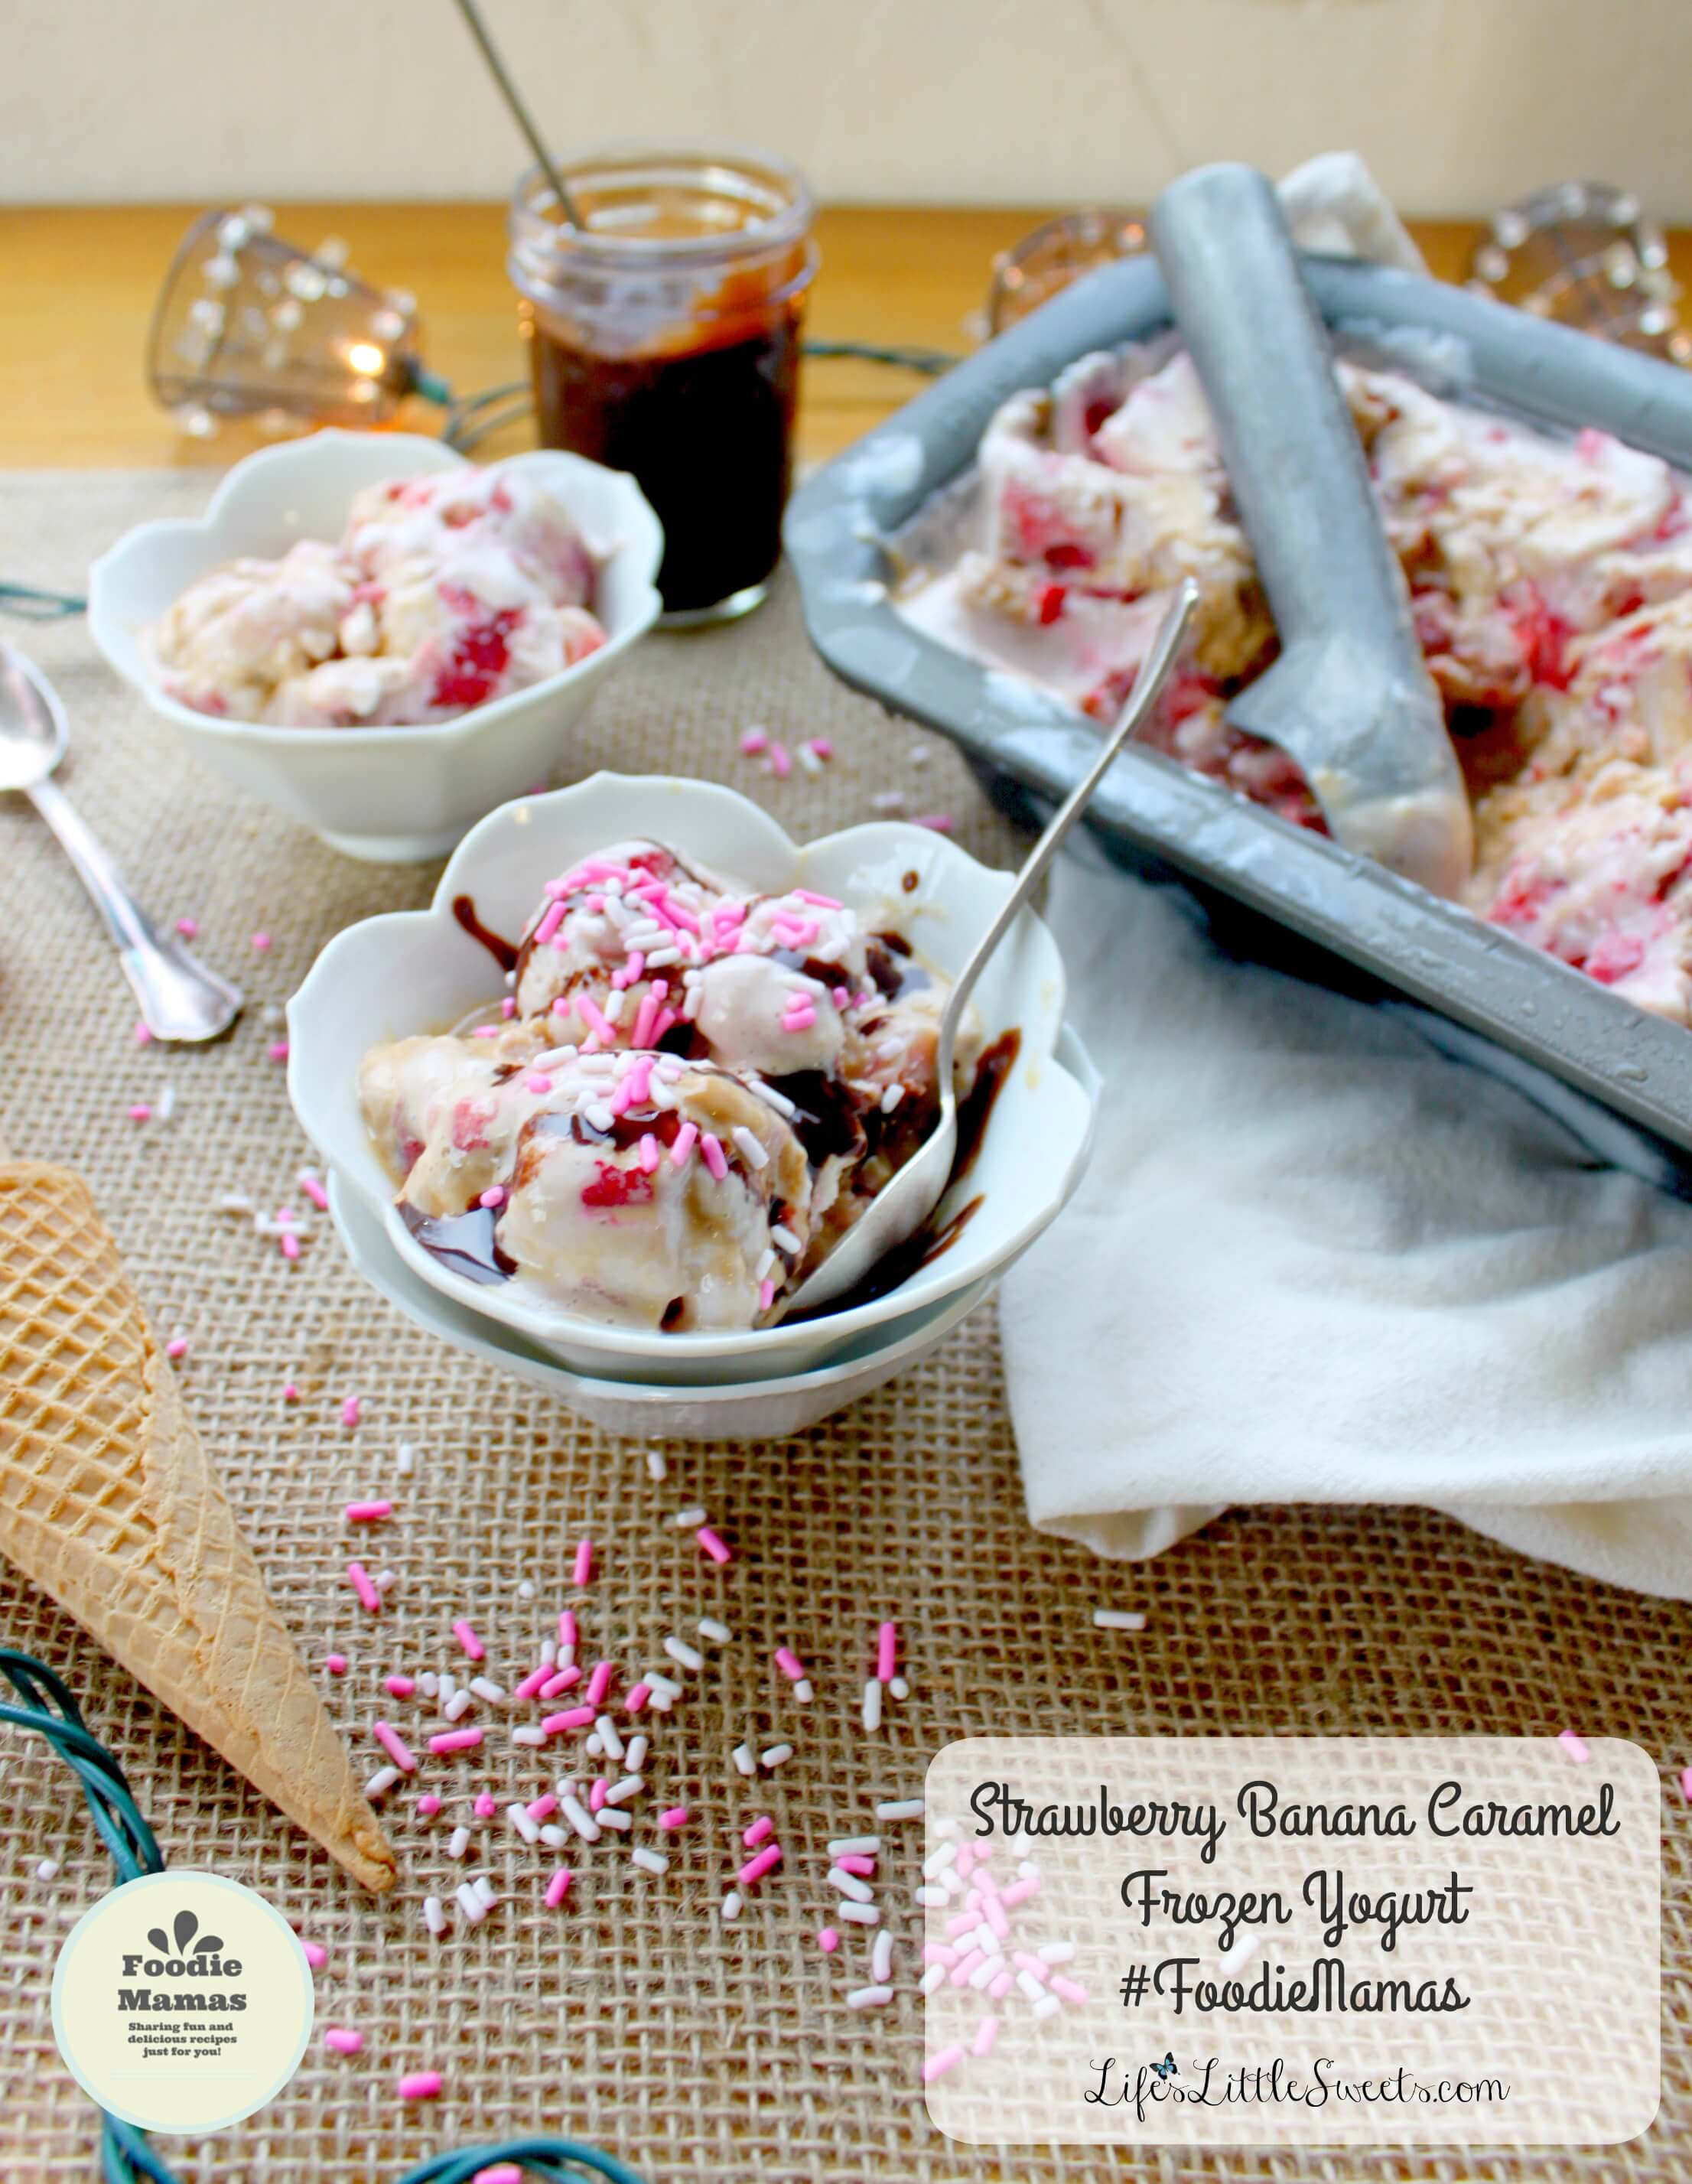 Strawberry Banana Caramel Frozen Yogurt has only 4 ingredients, uses a base of frozen bananas & strawberry Greek yogurt with fresh diced strawberries and a ribbon of my Easy Caramel (Dulce de Leche) recipe and here's a bonus: it does not require the use of an ice cream maker! #FoodieMamas #frozenyogurt #lifeslittlesweets #strawberries #strawberry